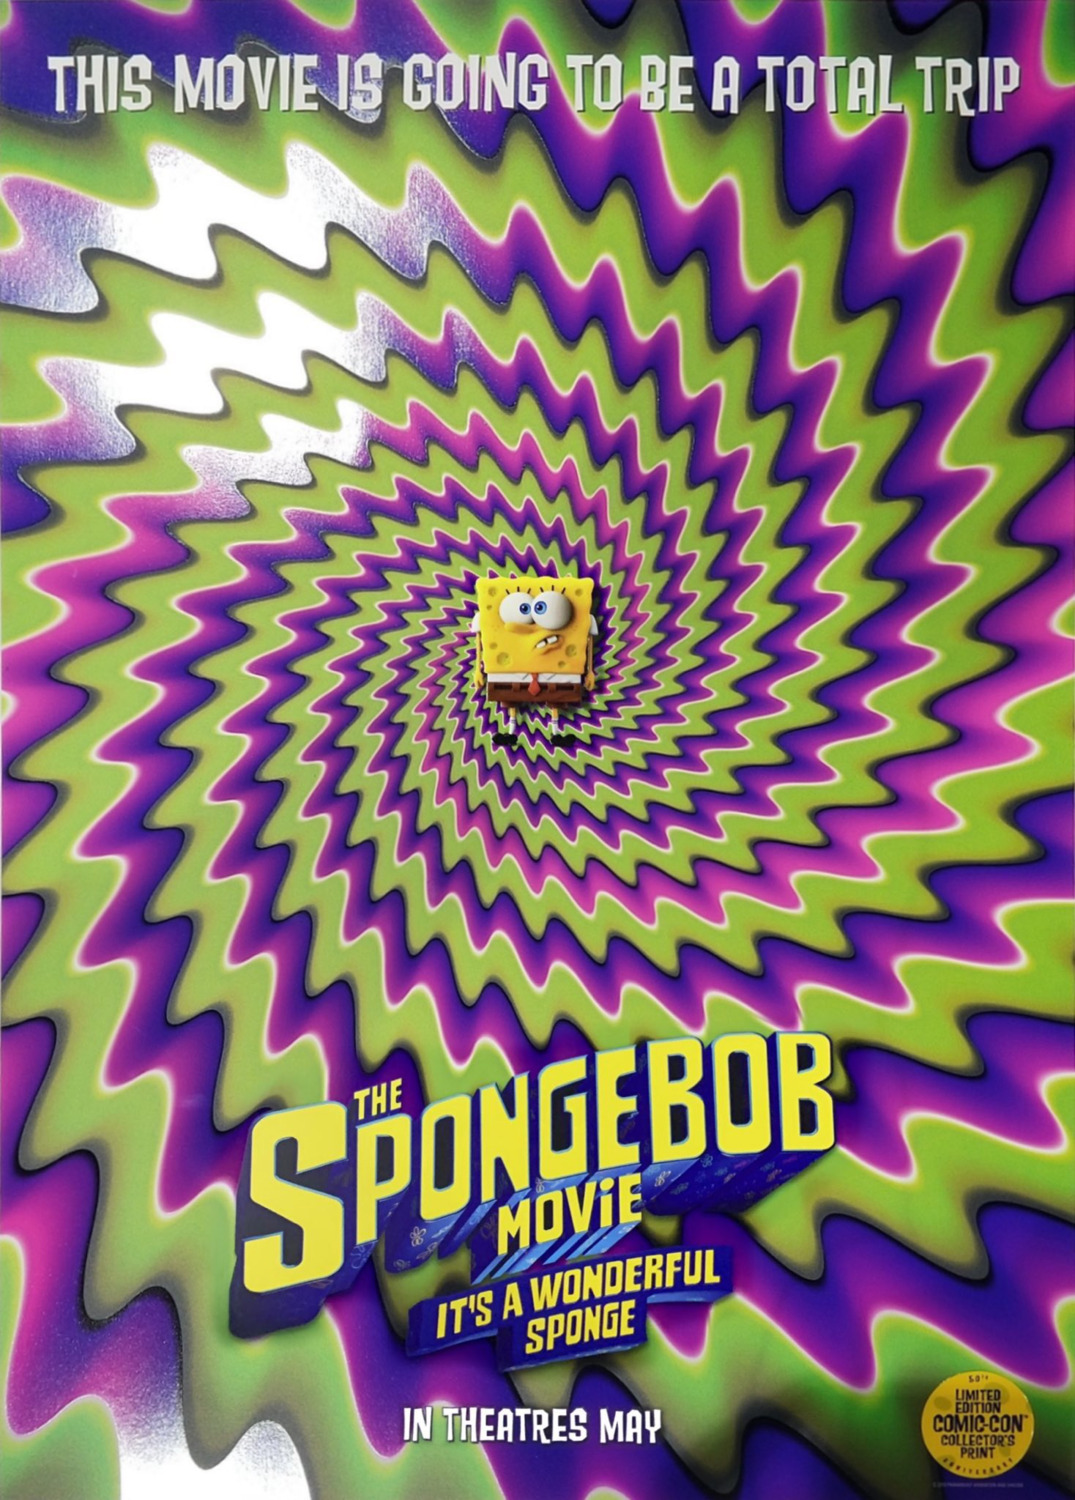 Nick Com Spongebob Movie : spongebob, movie, NickALive!:, Nickelodeon, Unveils, First, SpongeBob, Movie:, Wonderful, Sponge', Poster